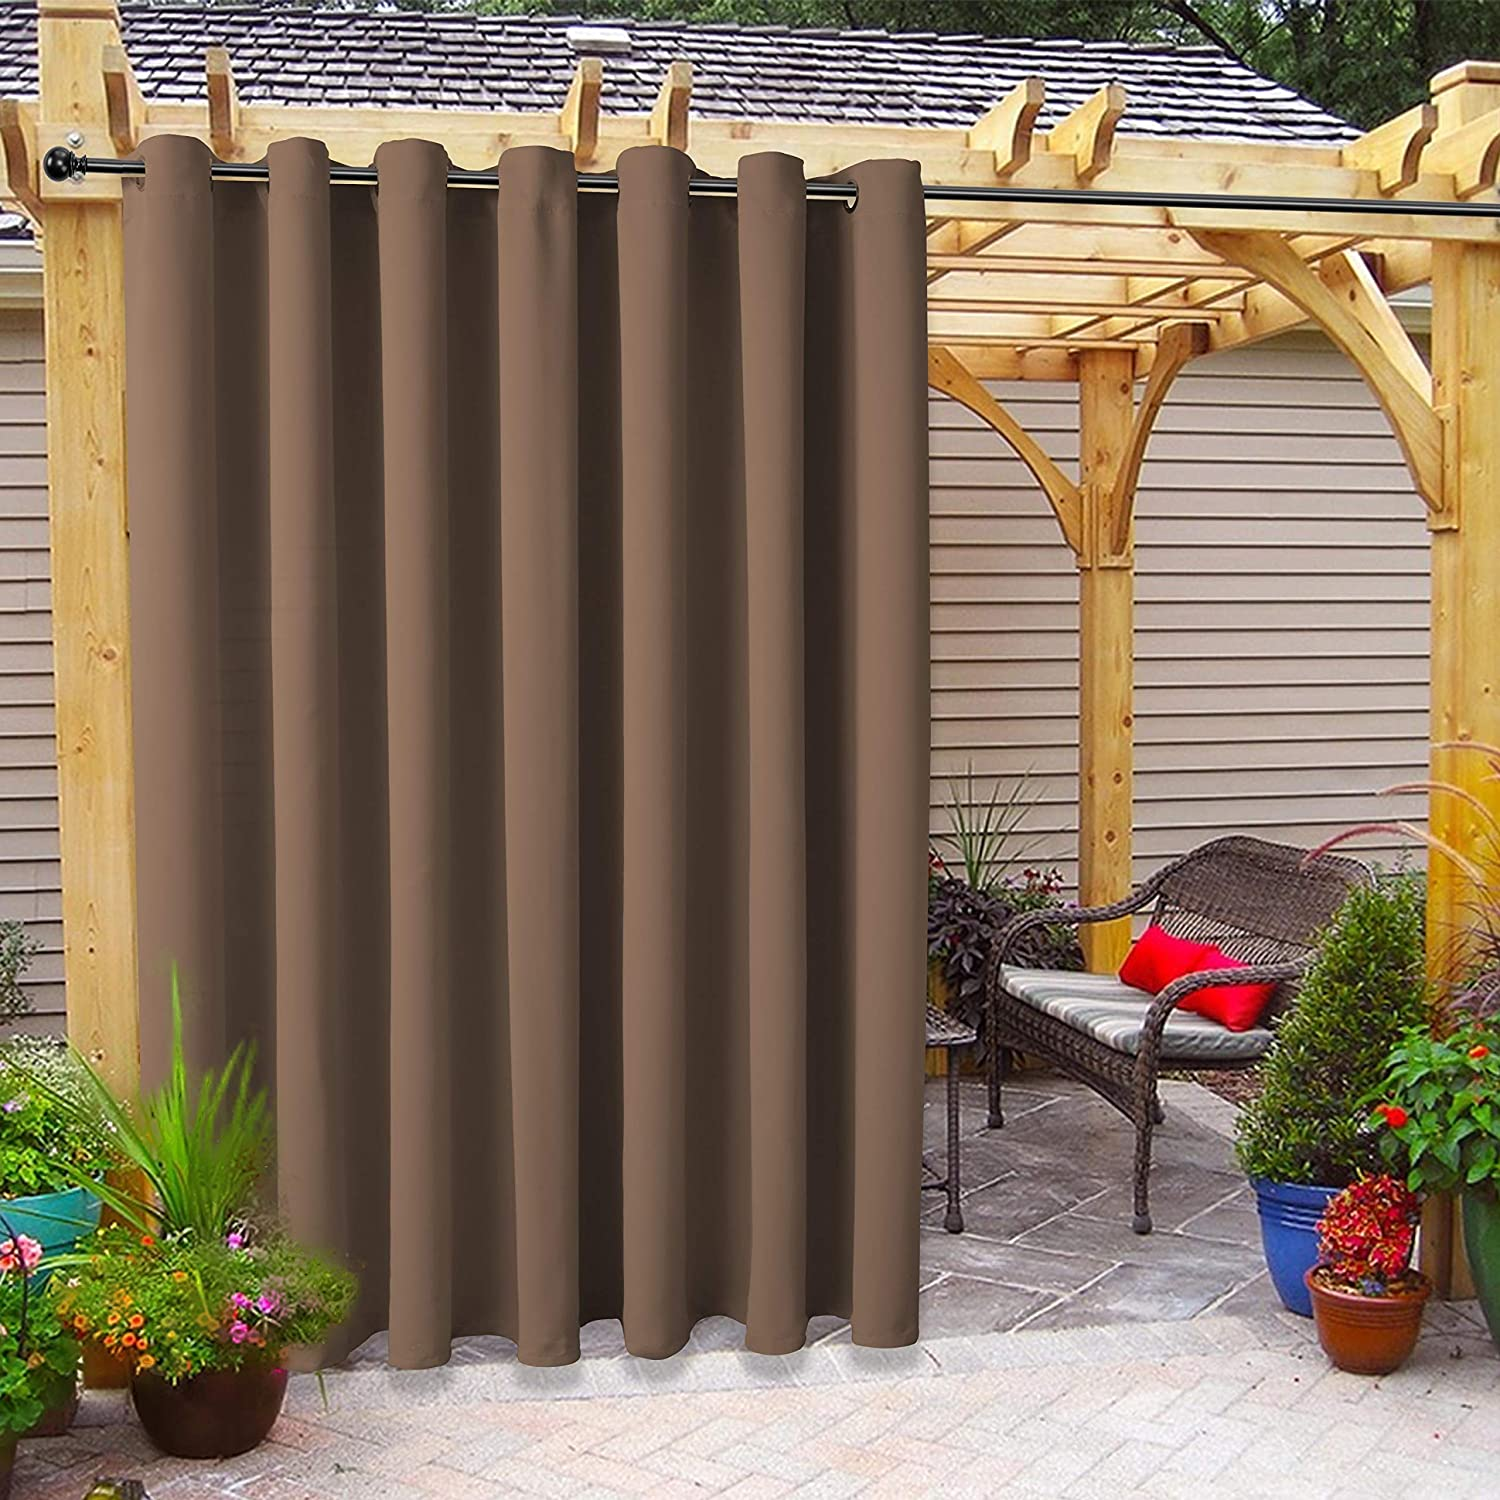 FLOWEROOM Indoor/Outdoor Curtains for Patio, Pergola and Cabana, Khaki, 100 x 95 inch – Sun Light Blocking Waterproof, Grommet Thermal Blackout Curtains for Bedroom/Living Room, 1 Panel